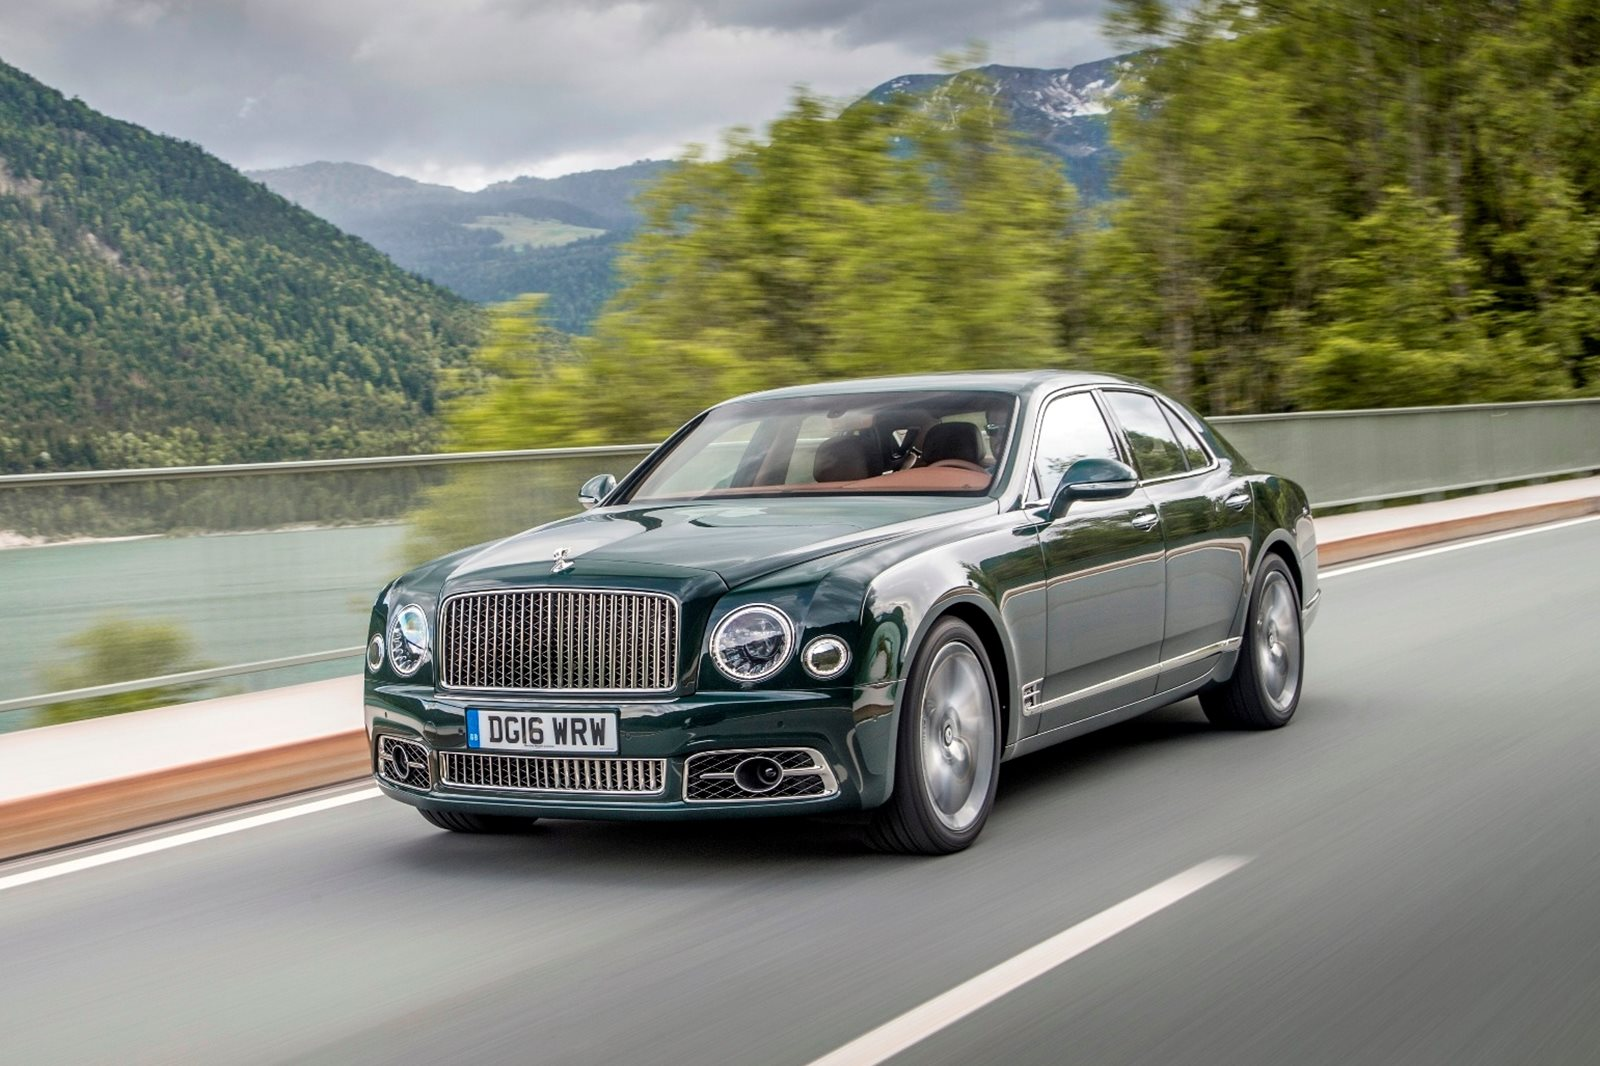 2020 Bentley Mulsanne Speed Review Trims Specs Price New Interior Features Exterior Design And Specifications Carbuzz